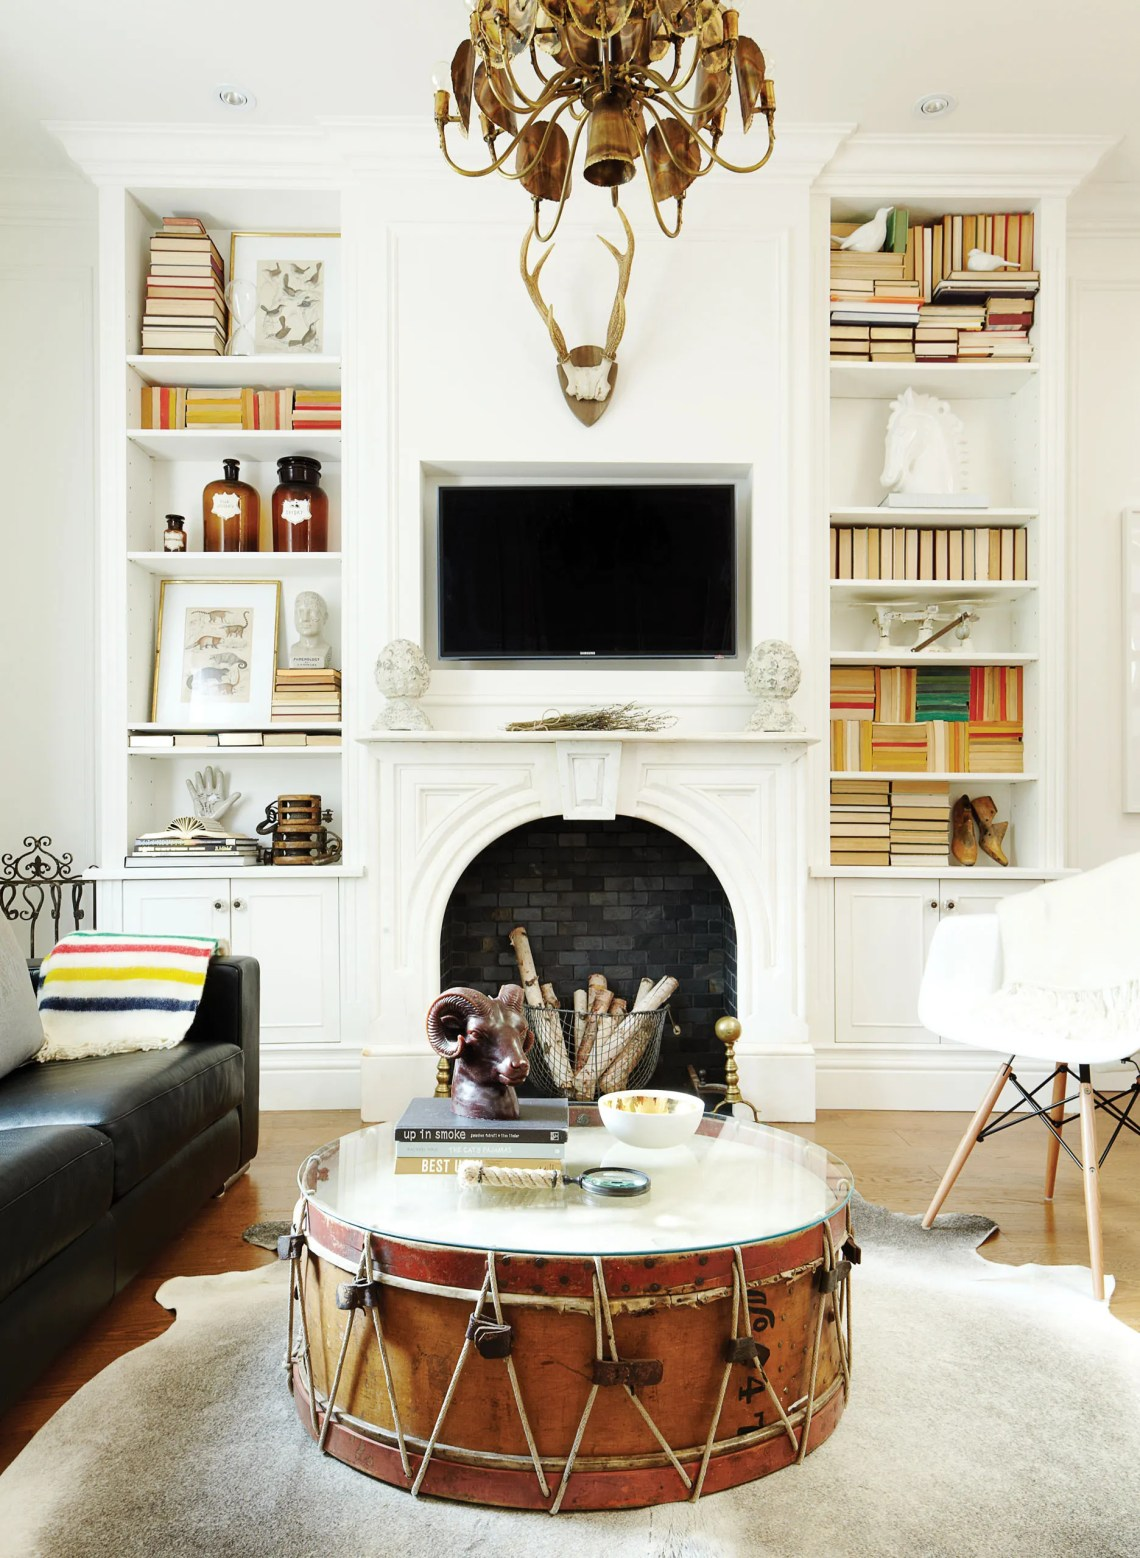 How to mix modern decor with vintage pieces - Chatelaine